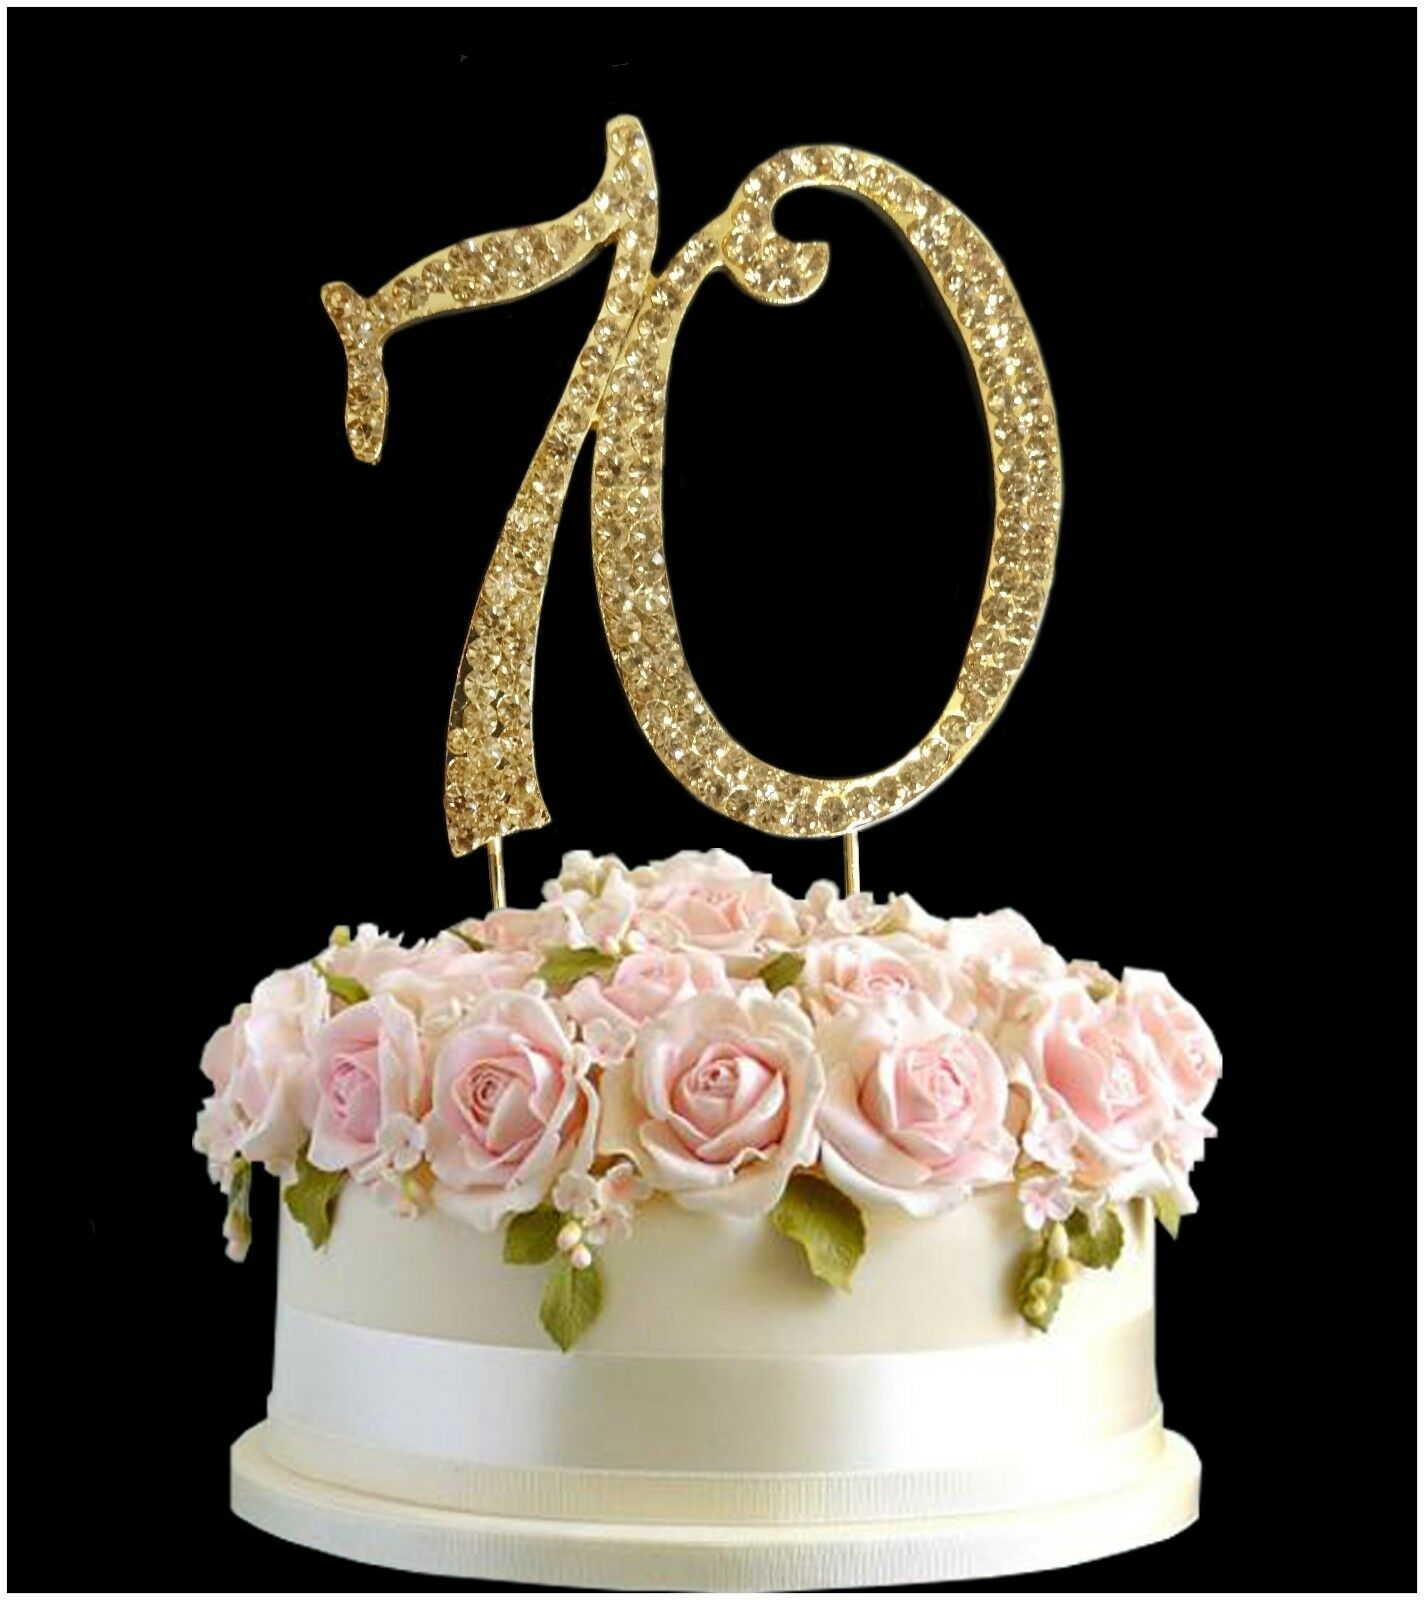 Super 70Th Birthday Cake Diamante Anniversary Gold Number Decoration 70 Funny Birthday Cards Online Fluifree Goldxyz